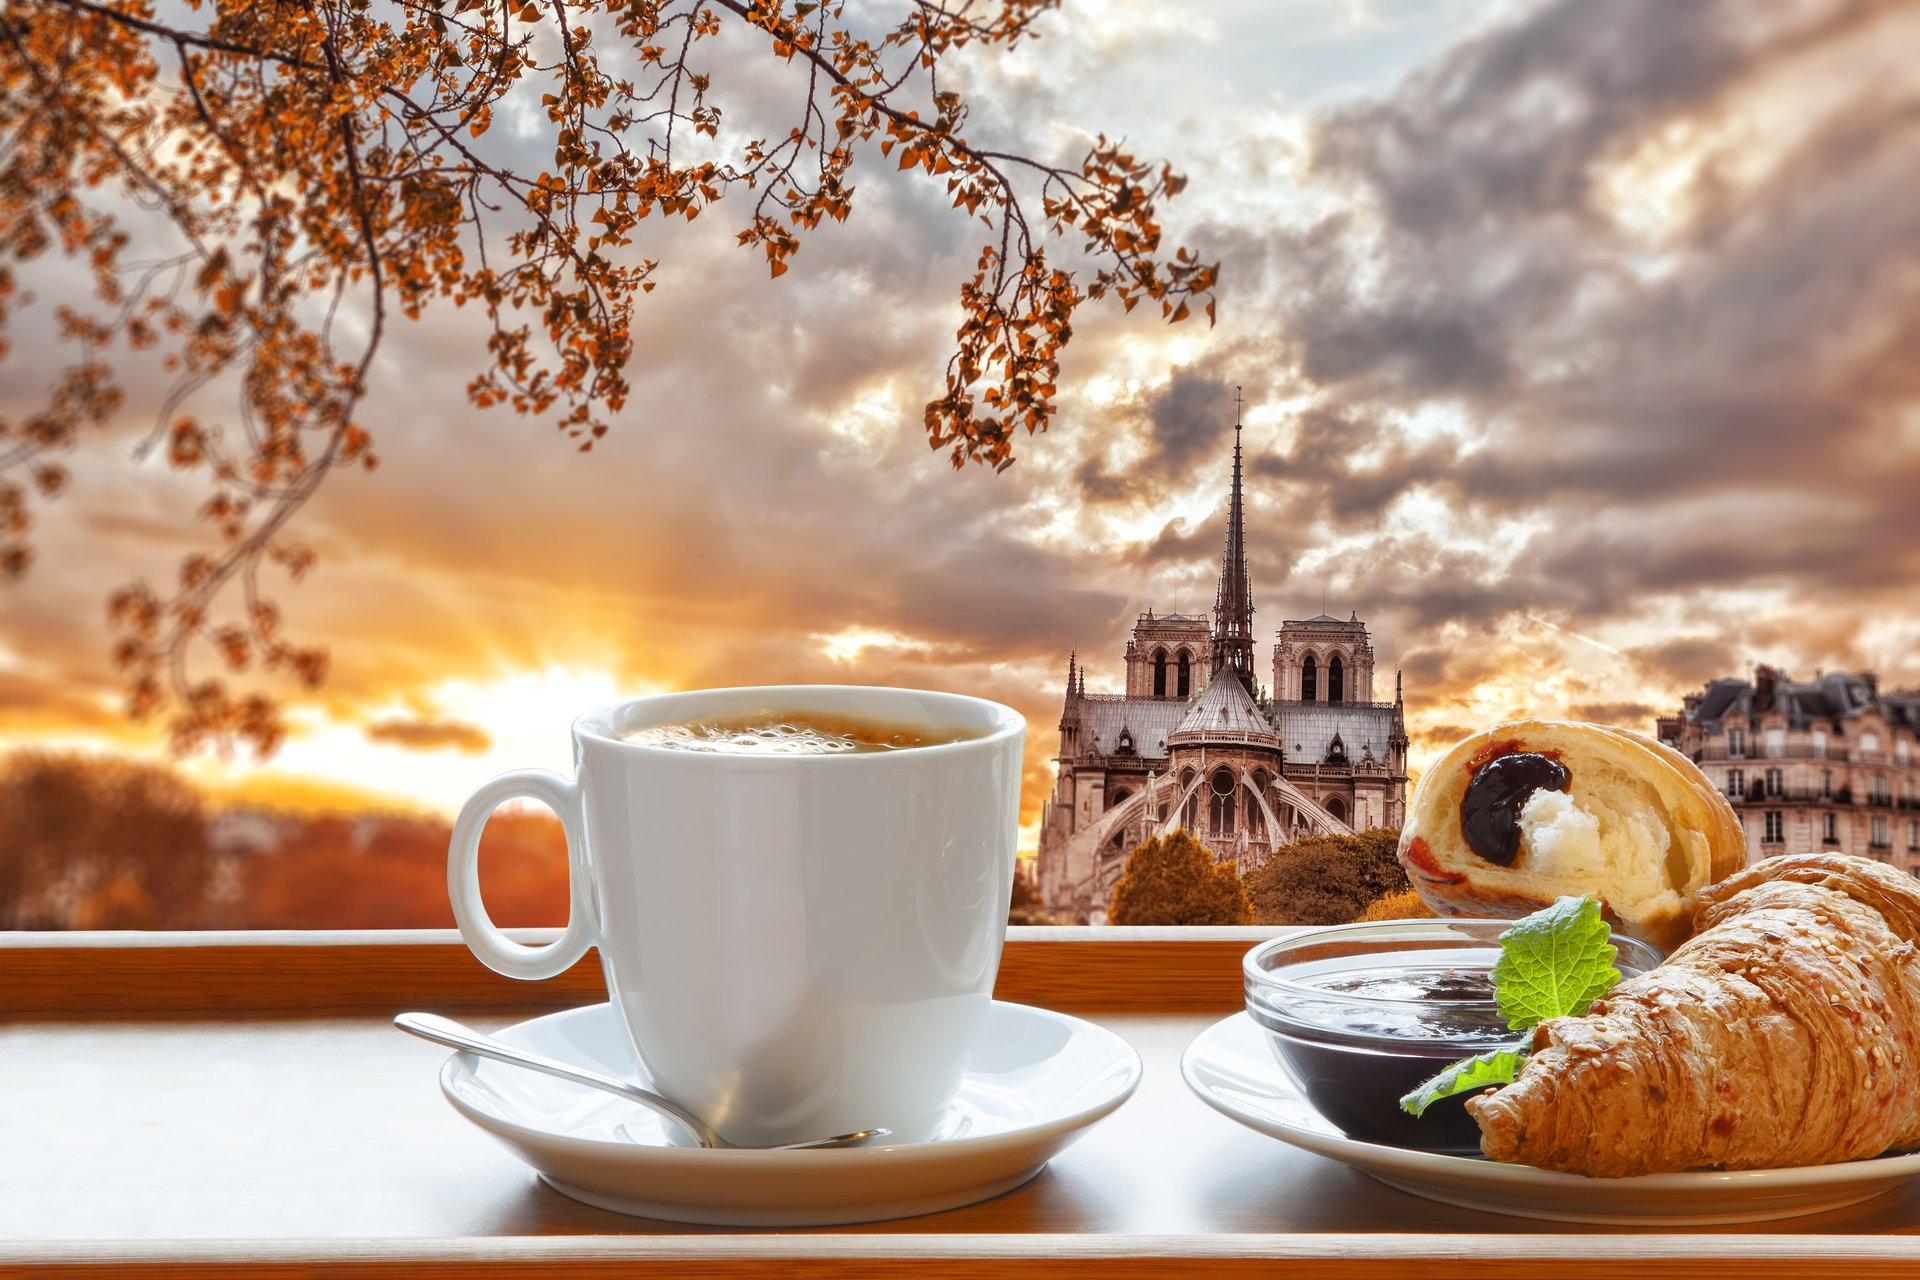 breakfast coffee cup croissant paris france notre dame cathedral jam